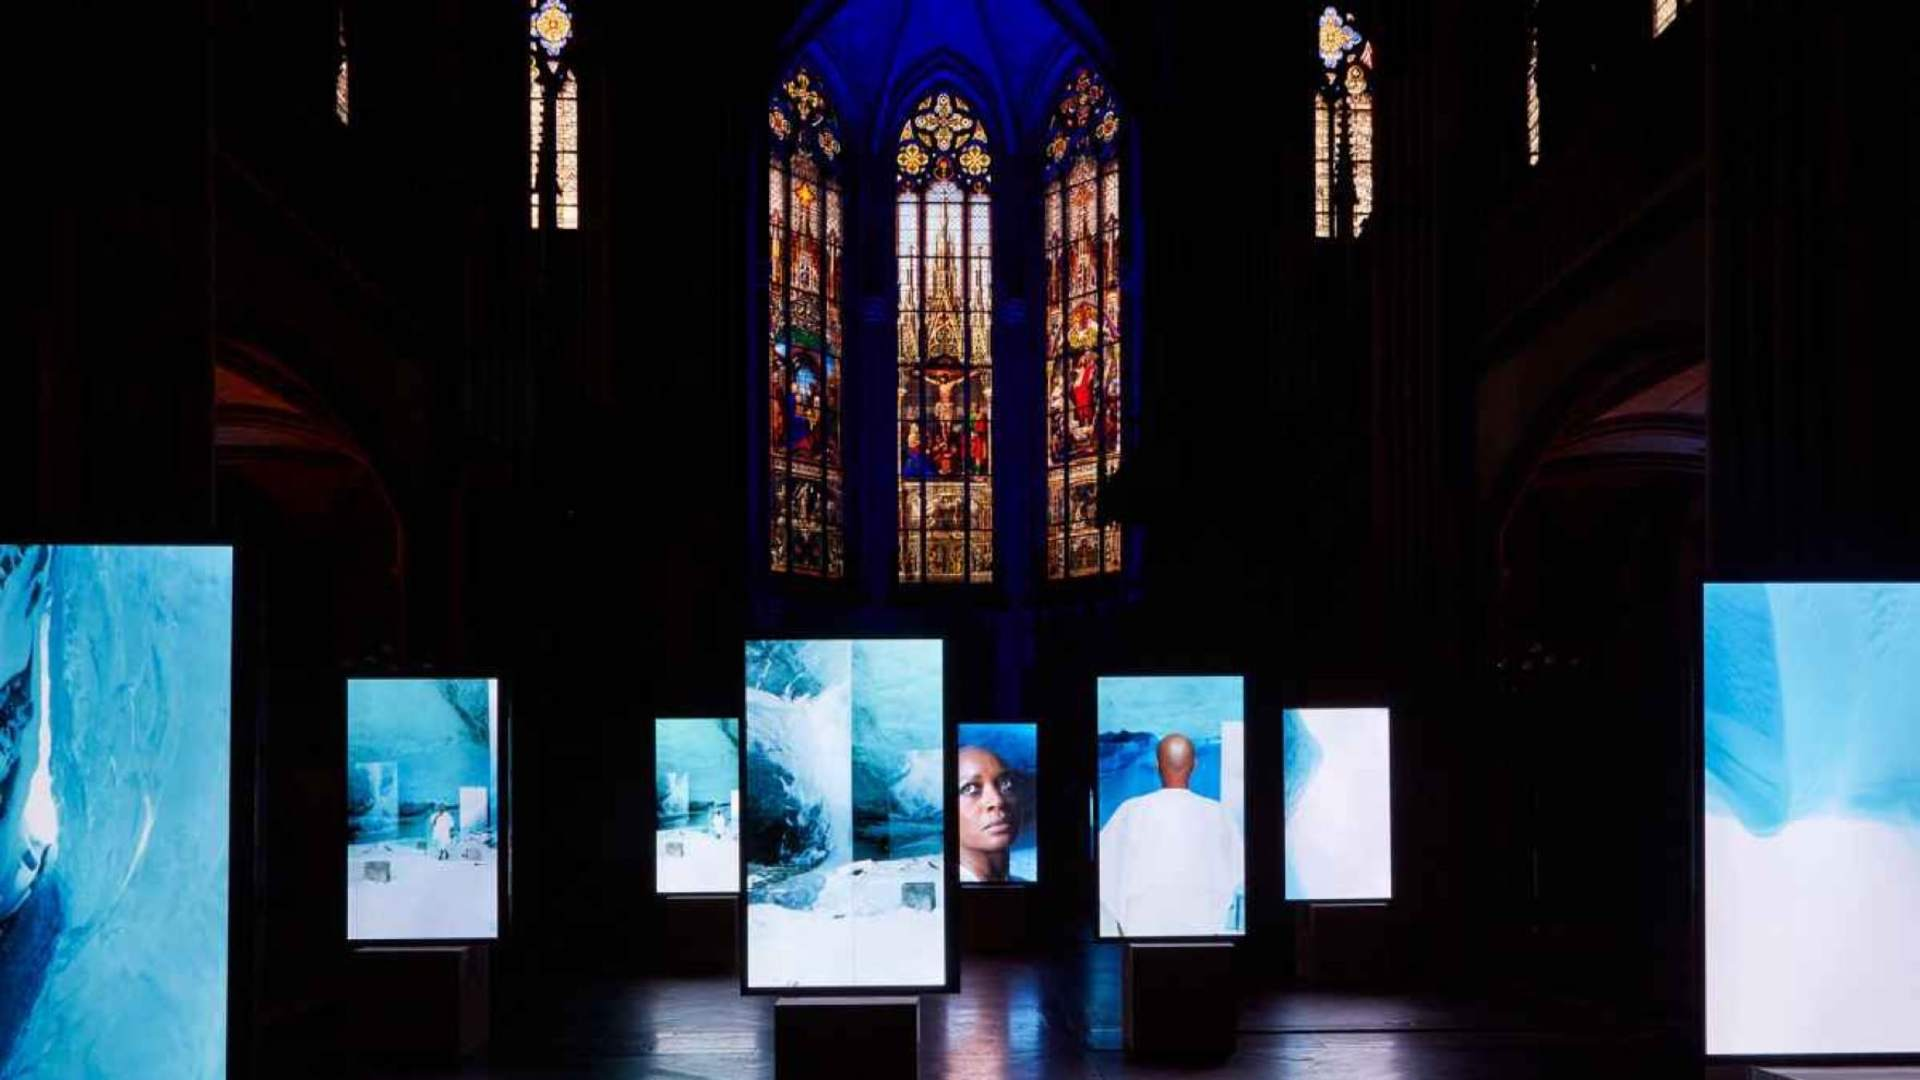 Isaac Julien's Stones Against Diamonds cathedral installation for the Basel 2015 exhibition.